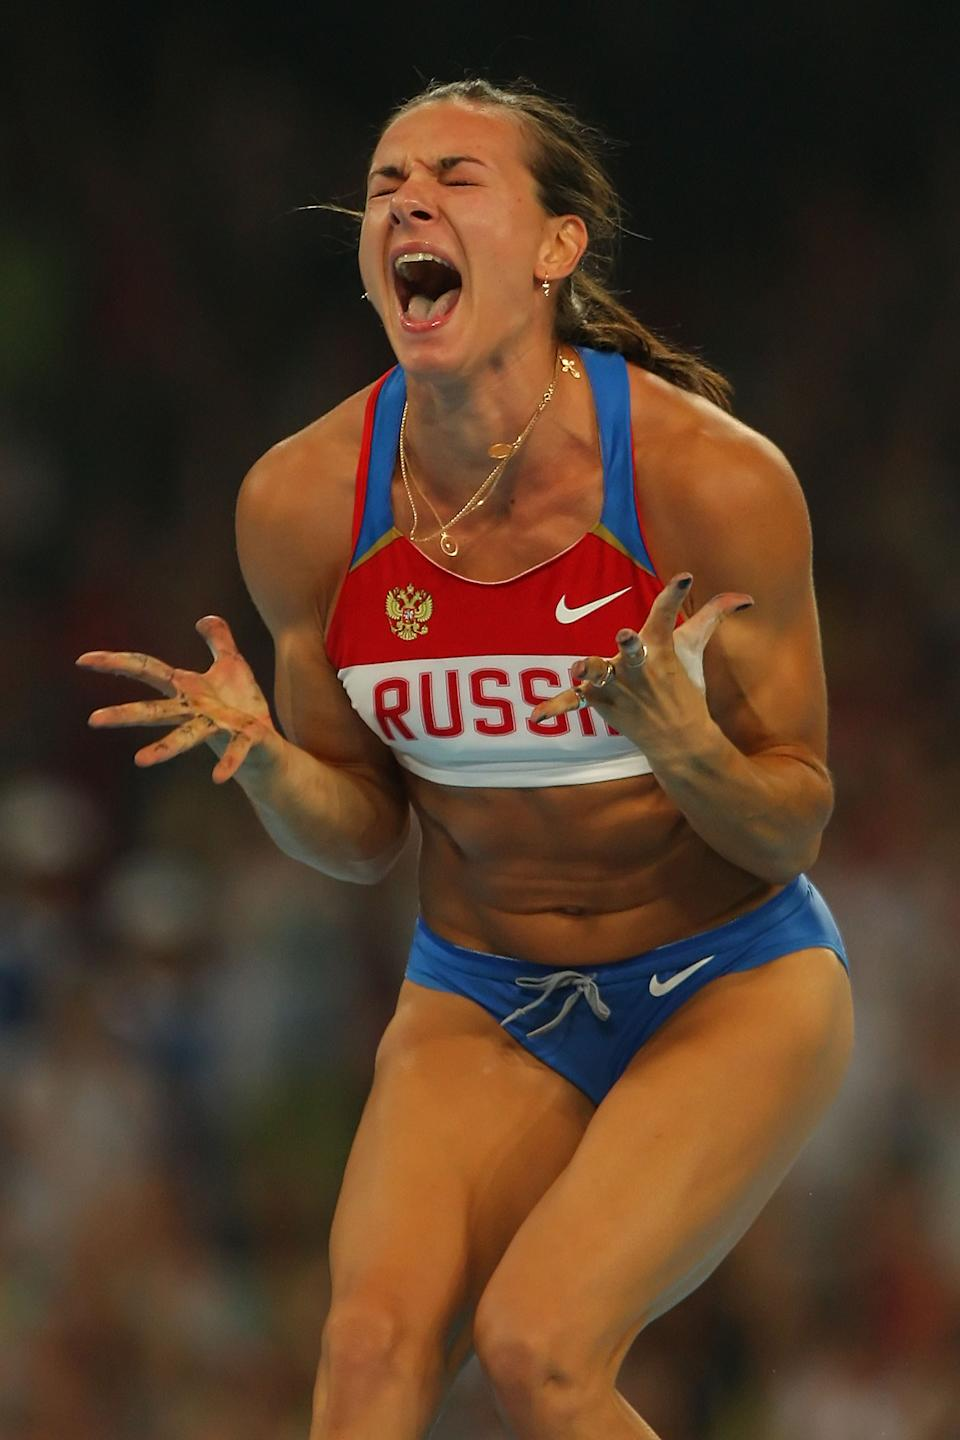 BEIJING - AUGUST 18: Elena Isinbaeva of Russia celebrates successfully jumping a new World Record of 5.05 in the Women's Pole Vault Final at the National Stadium on Day 10 of the Beijing 2008 Olympic Games on August 18, 2008 in Beijing, China. (Photo by Stu Forster/Getty Images)